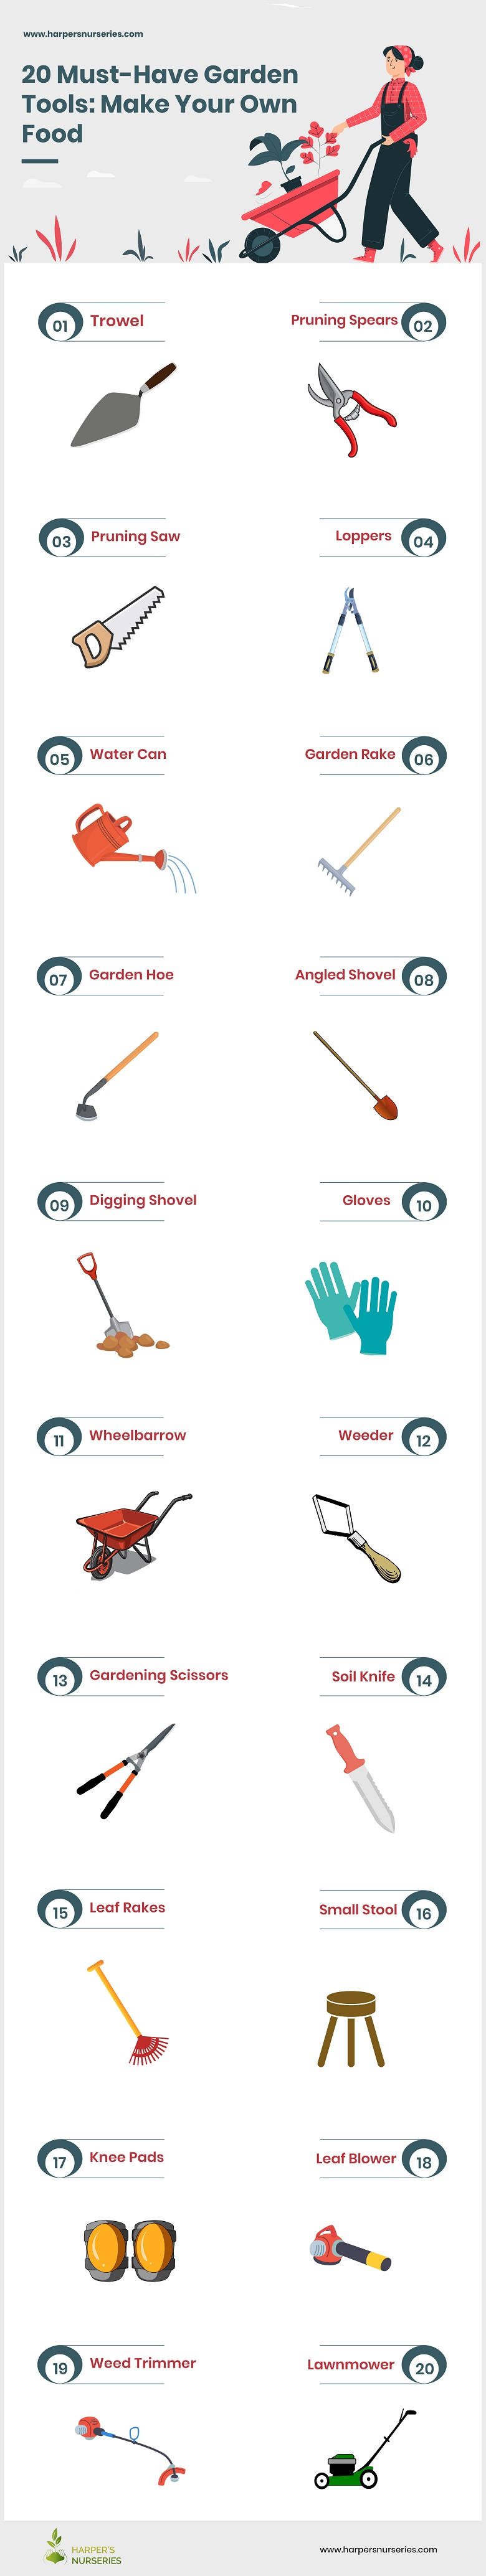 20 Must Have Garden Tools Make Your Own Food